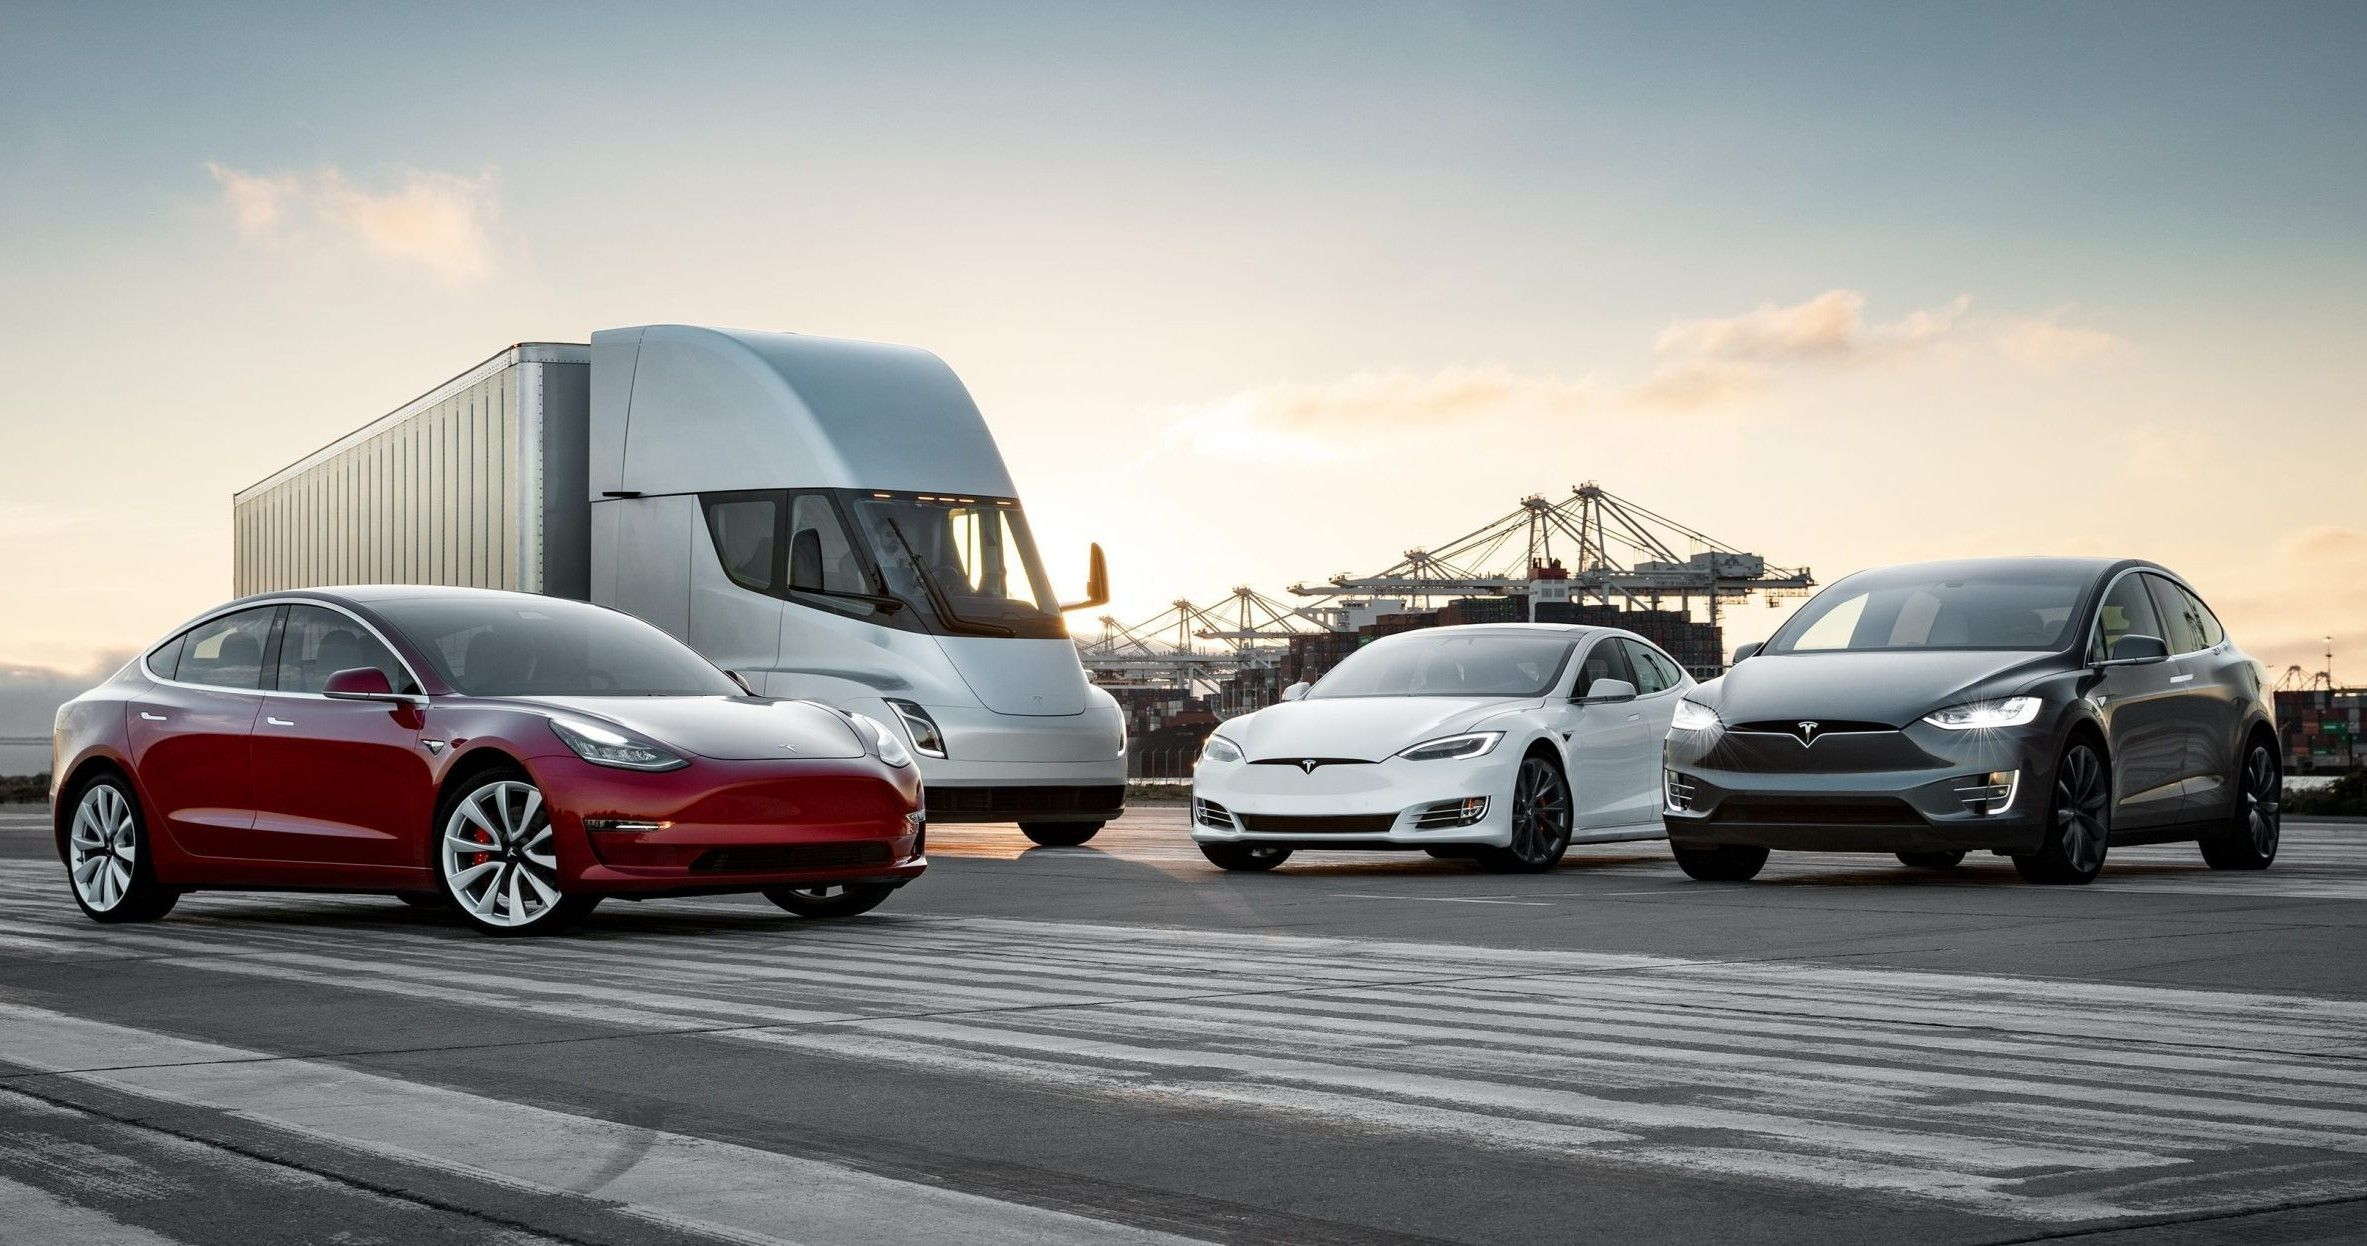 Tesla: A Full Preview Of Their Electric Vehicles Lineup